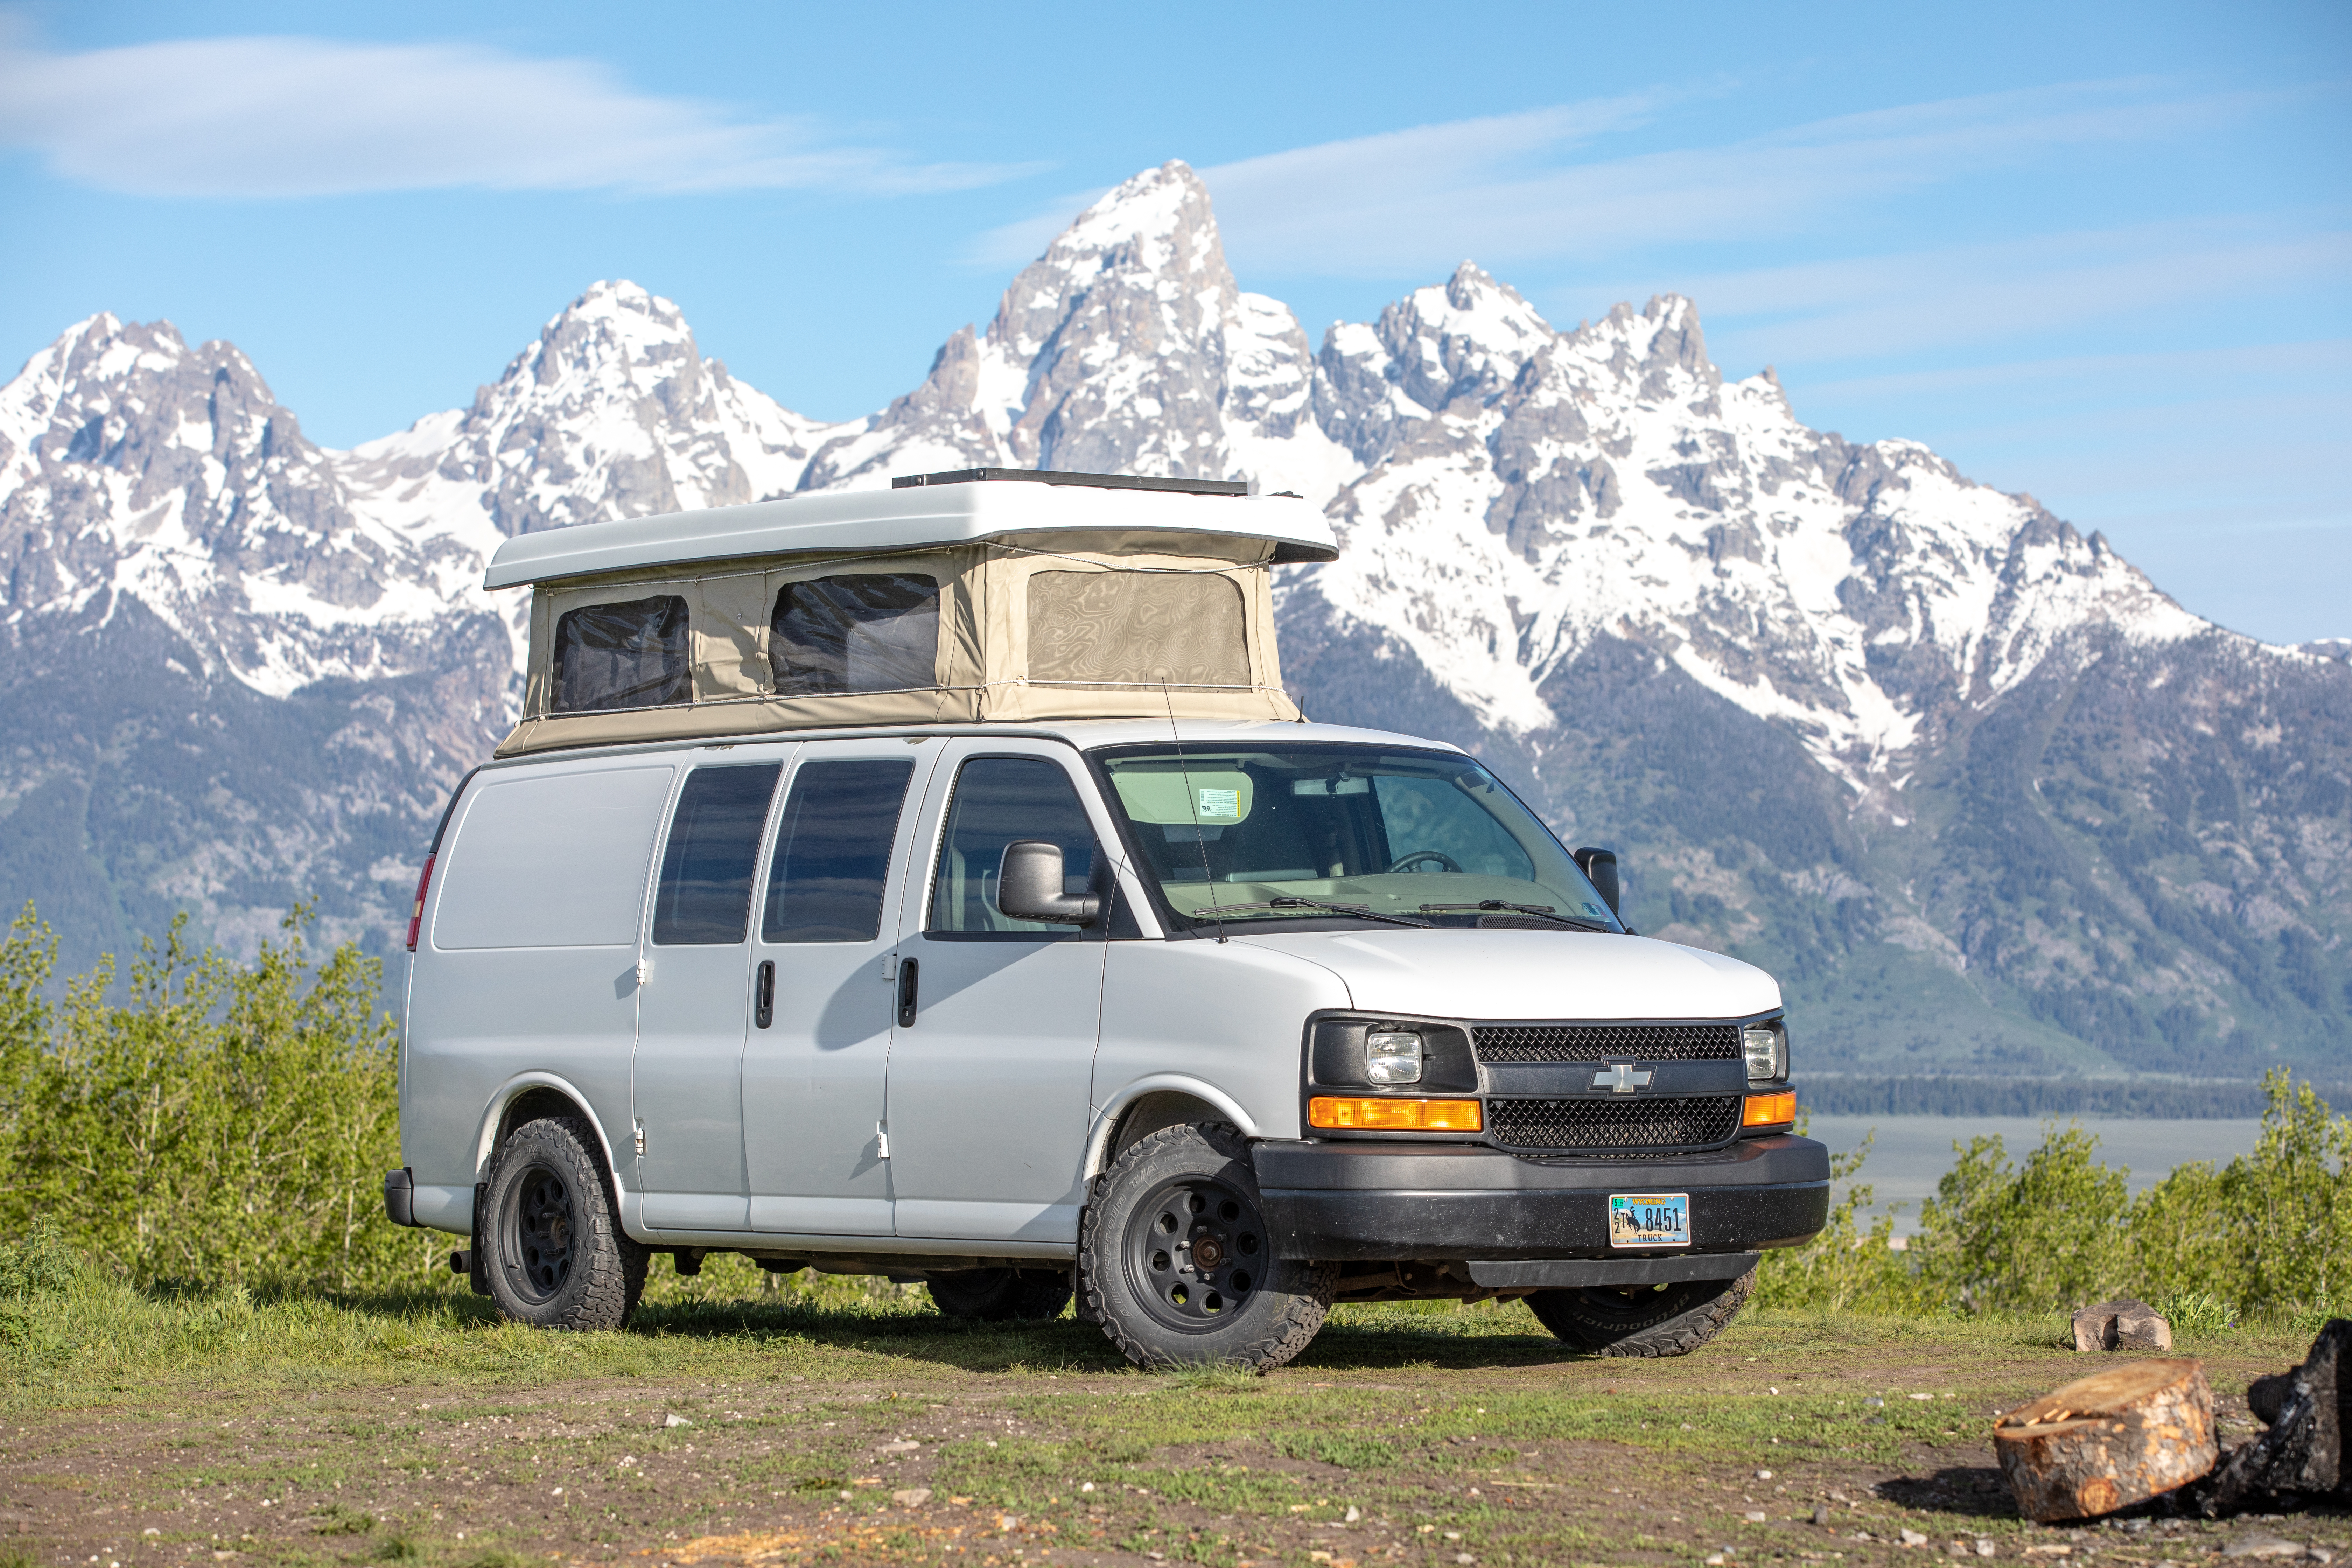 Where to rent an RV online